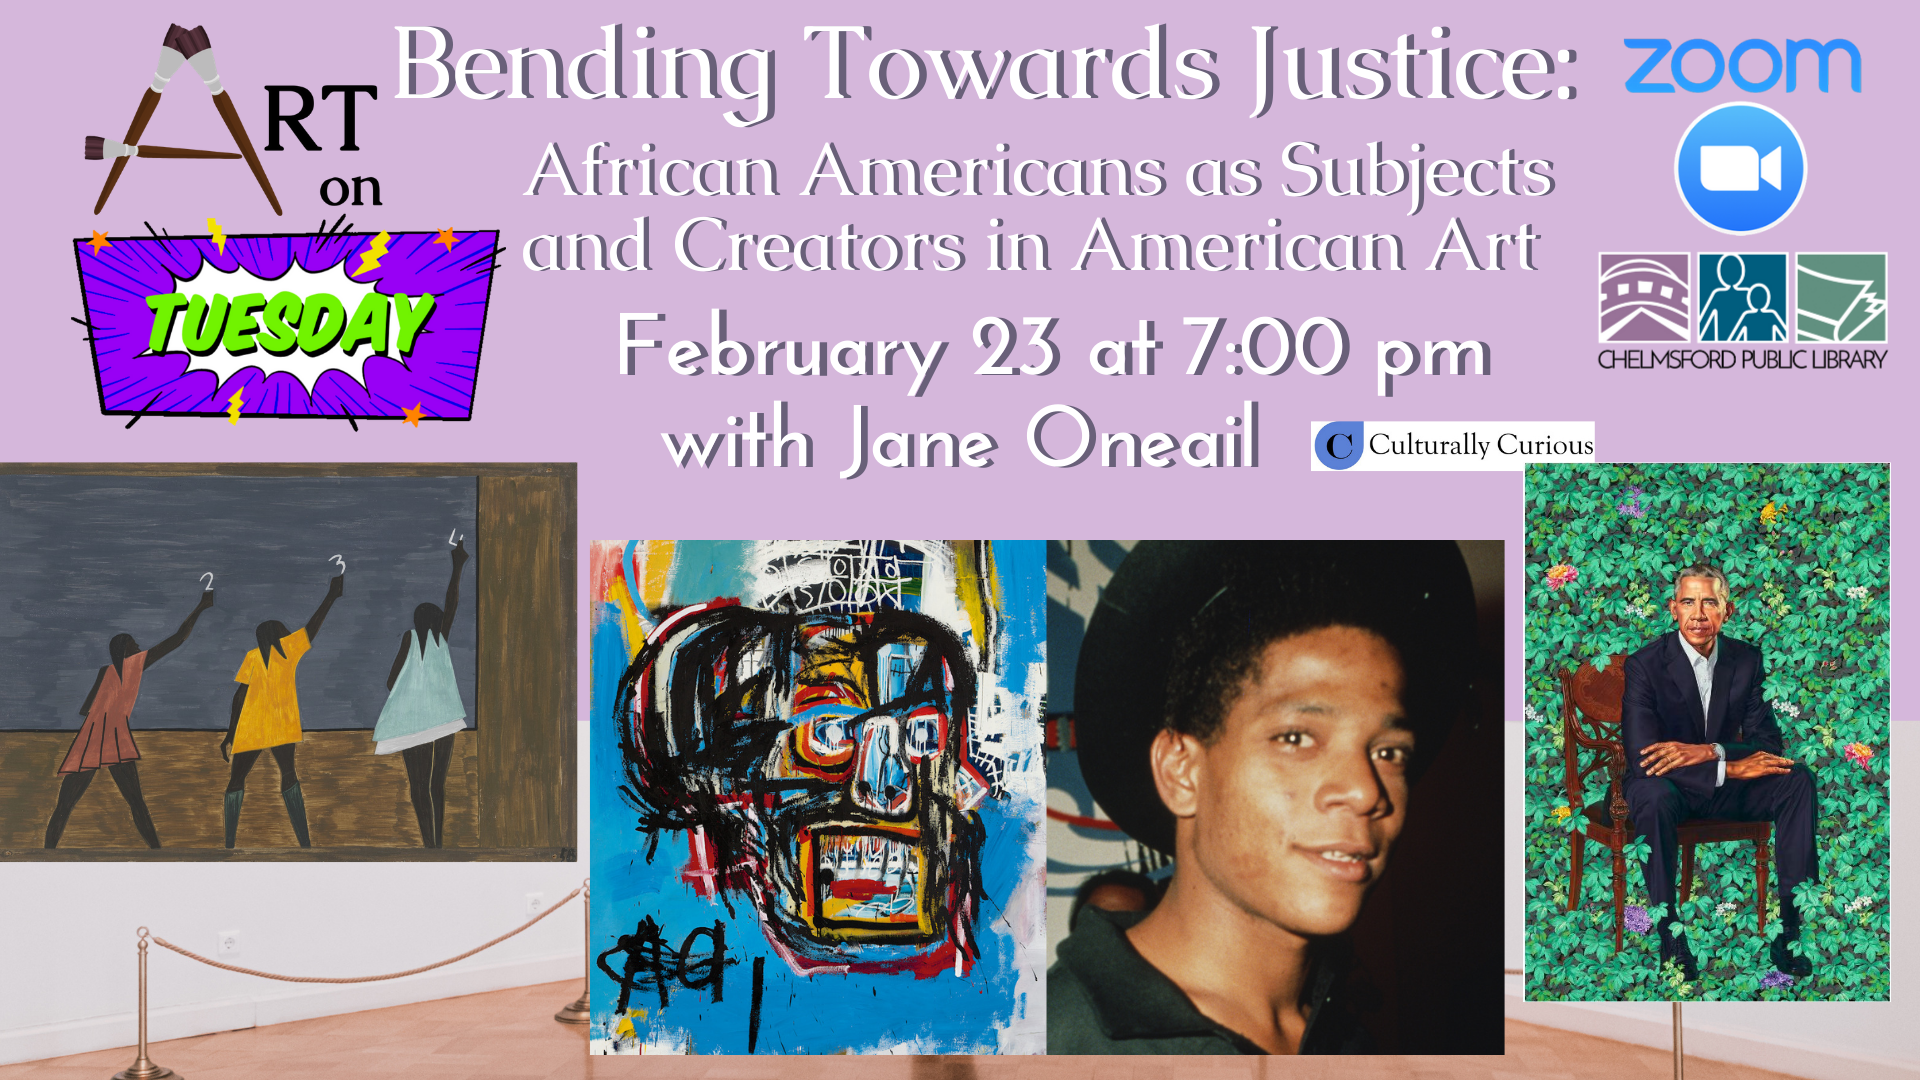 Art on Tuesdays: Bending Towards Justice: African Americans as Subject and Creators in American Art